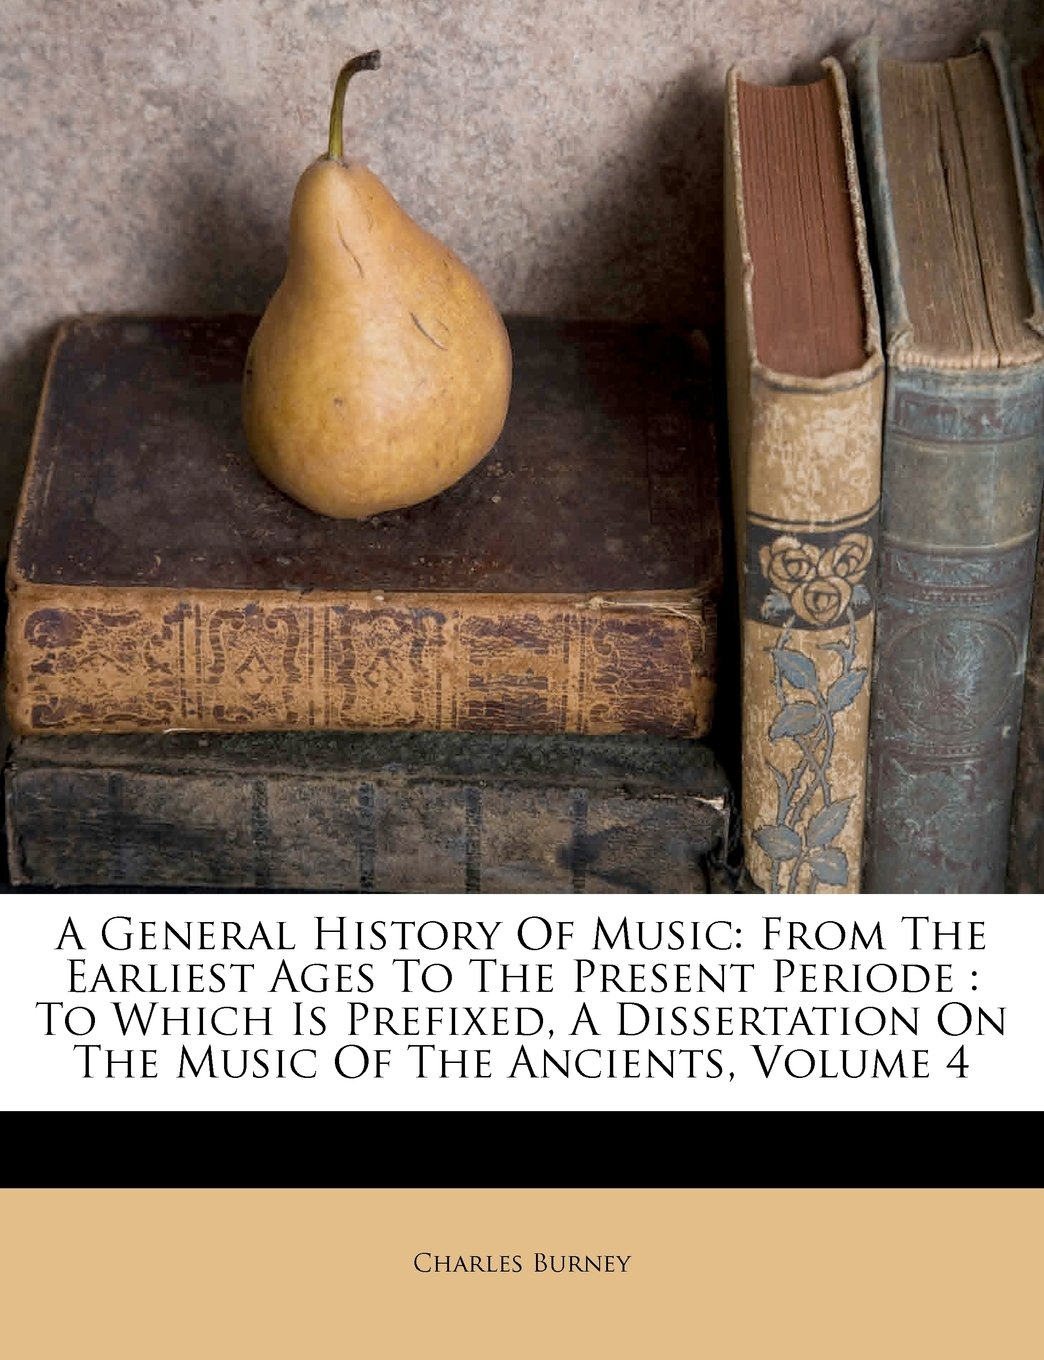 A General History Of Music: From The Earliest Ages To The Present Periode : To Which Is Prefixed, A Dissertation On The Music Of The Ancients, Volume 4 PDF